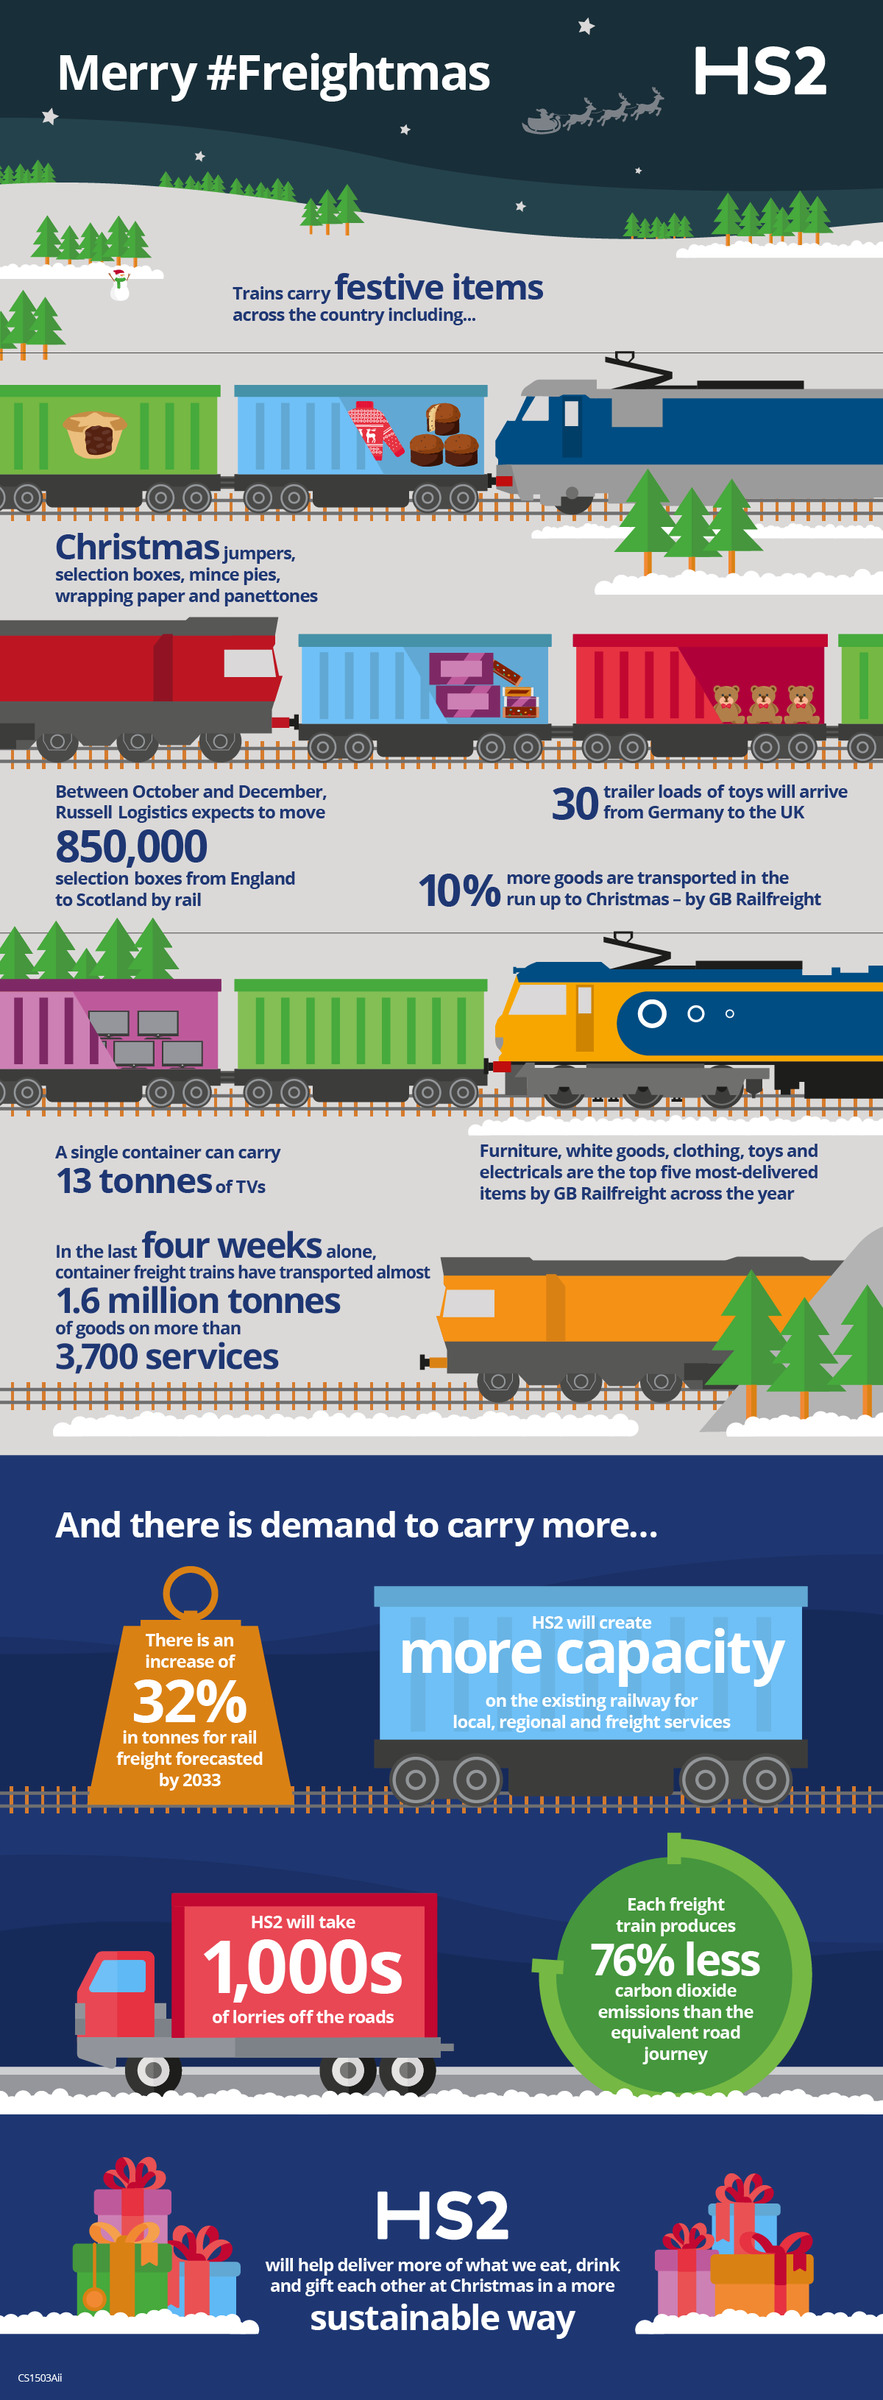 An infographic explains the importance of the rail freight sector in transporting goods at Christmas.